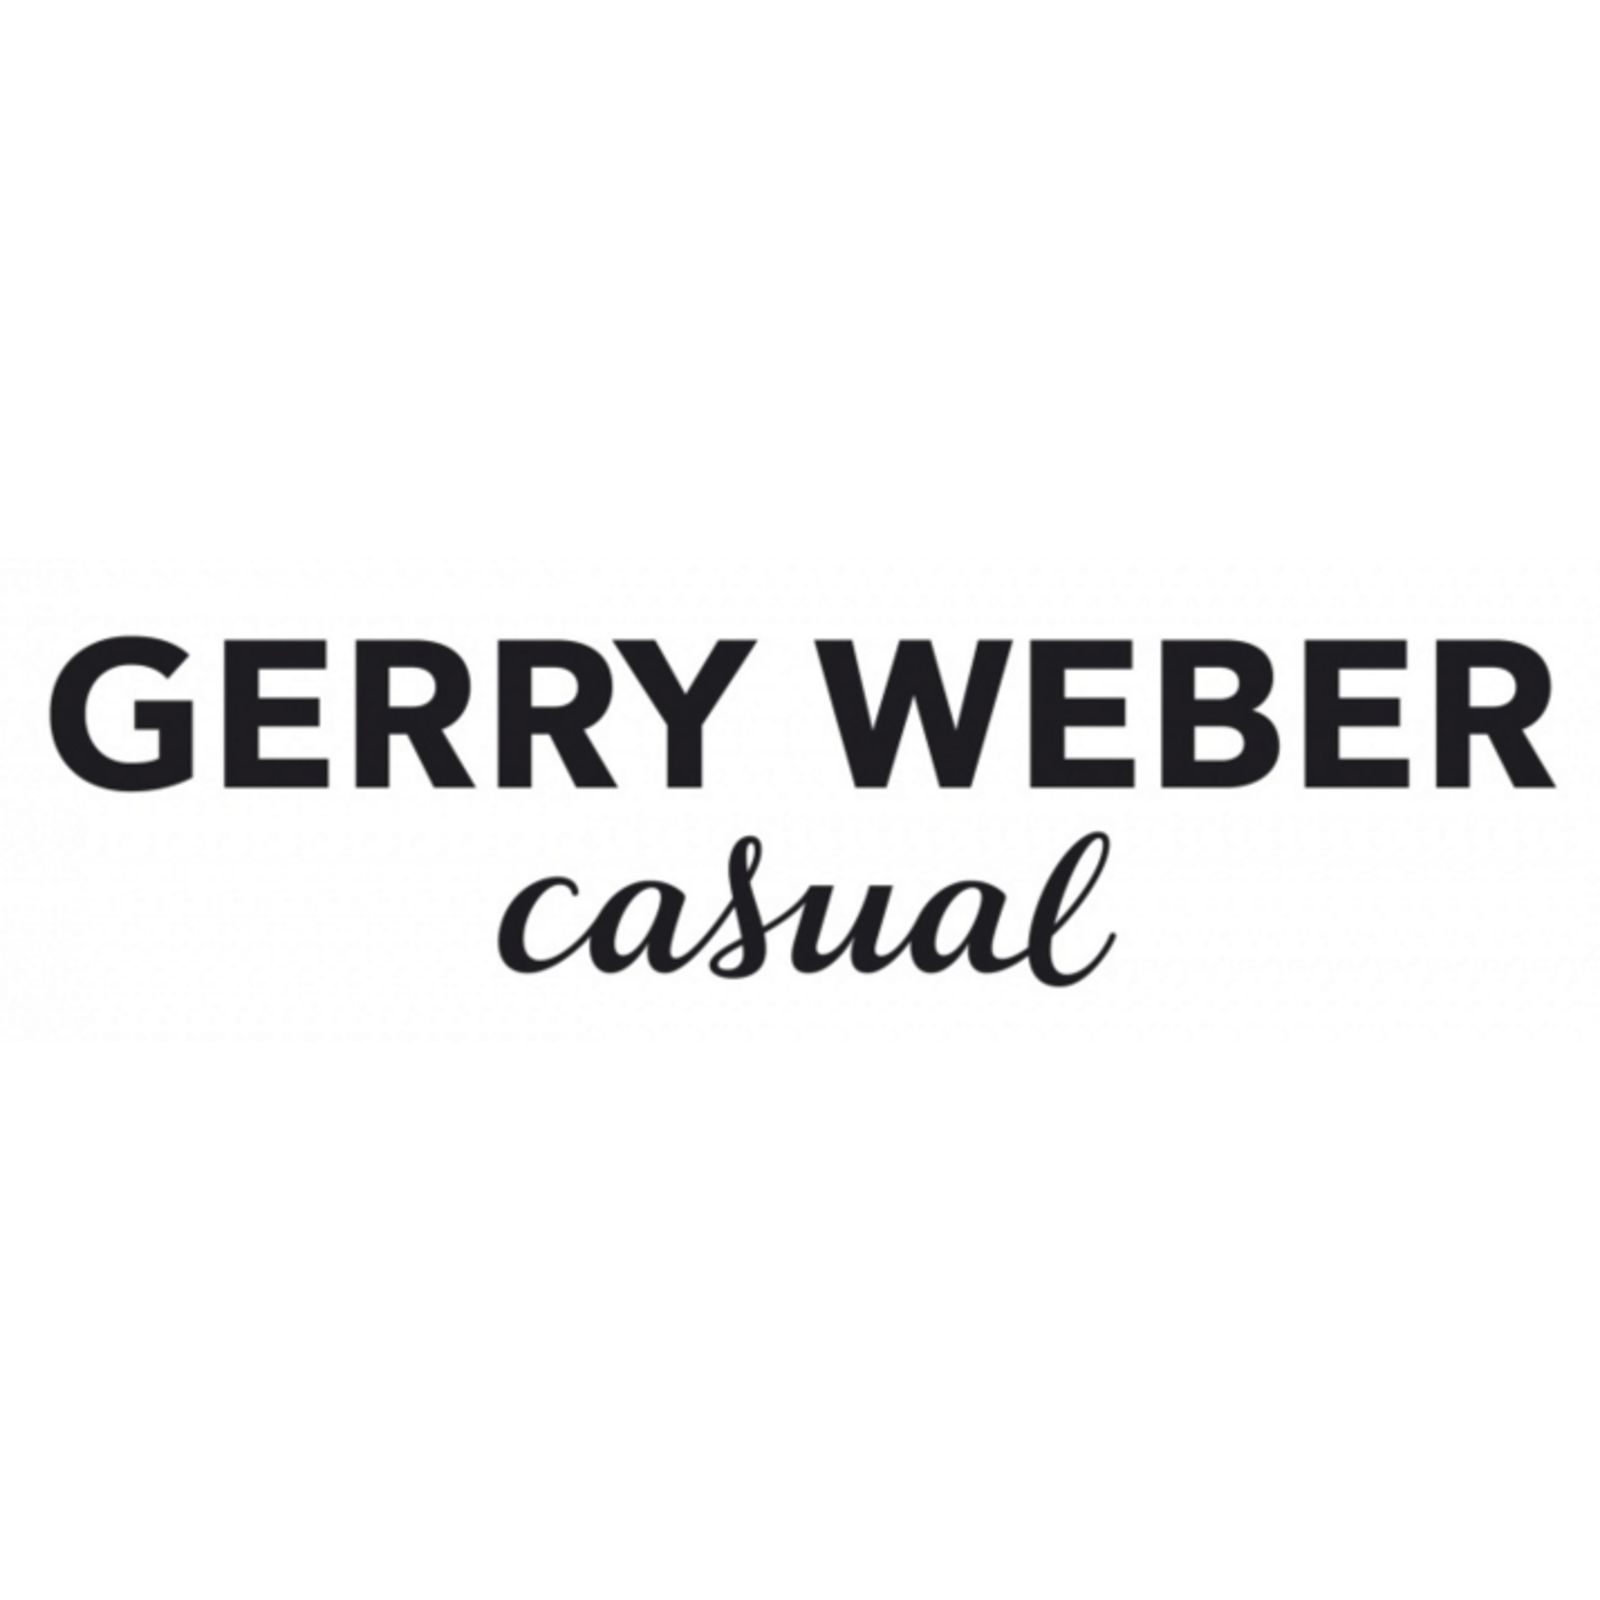 GERRY WEBER Casual (Image 1)